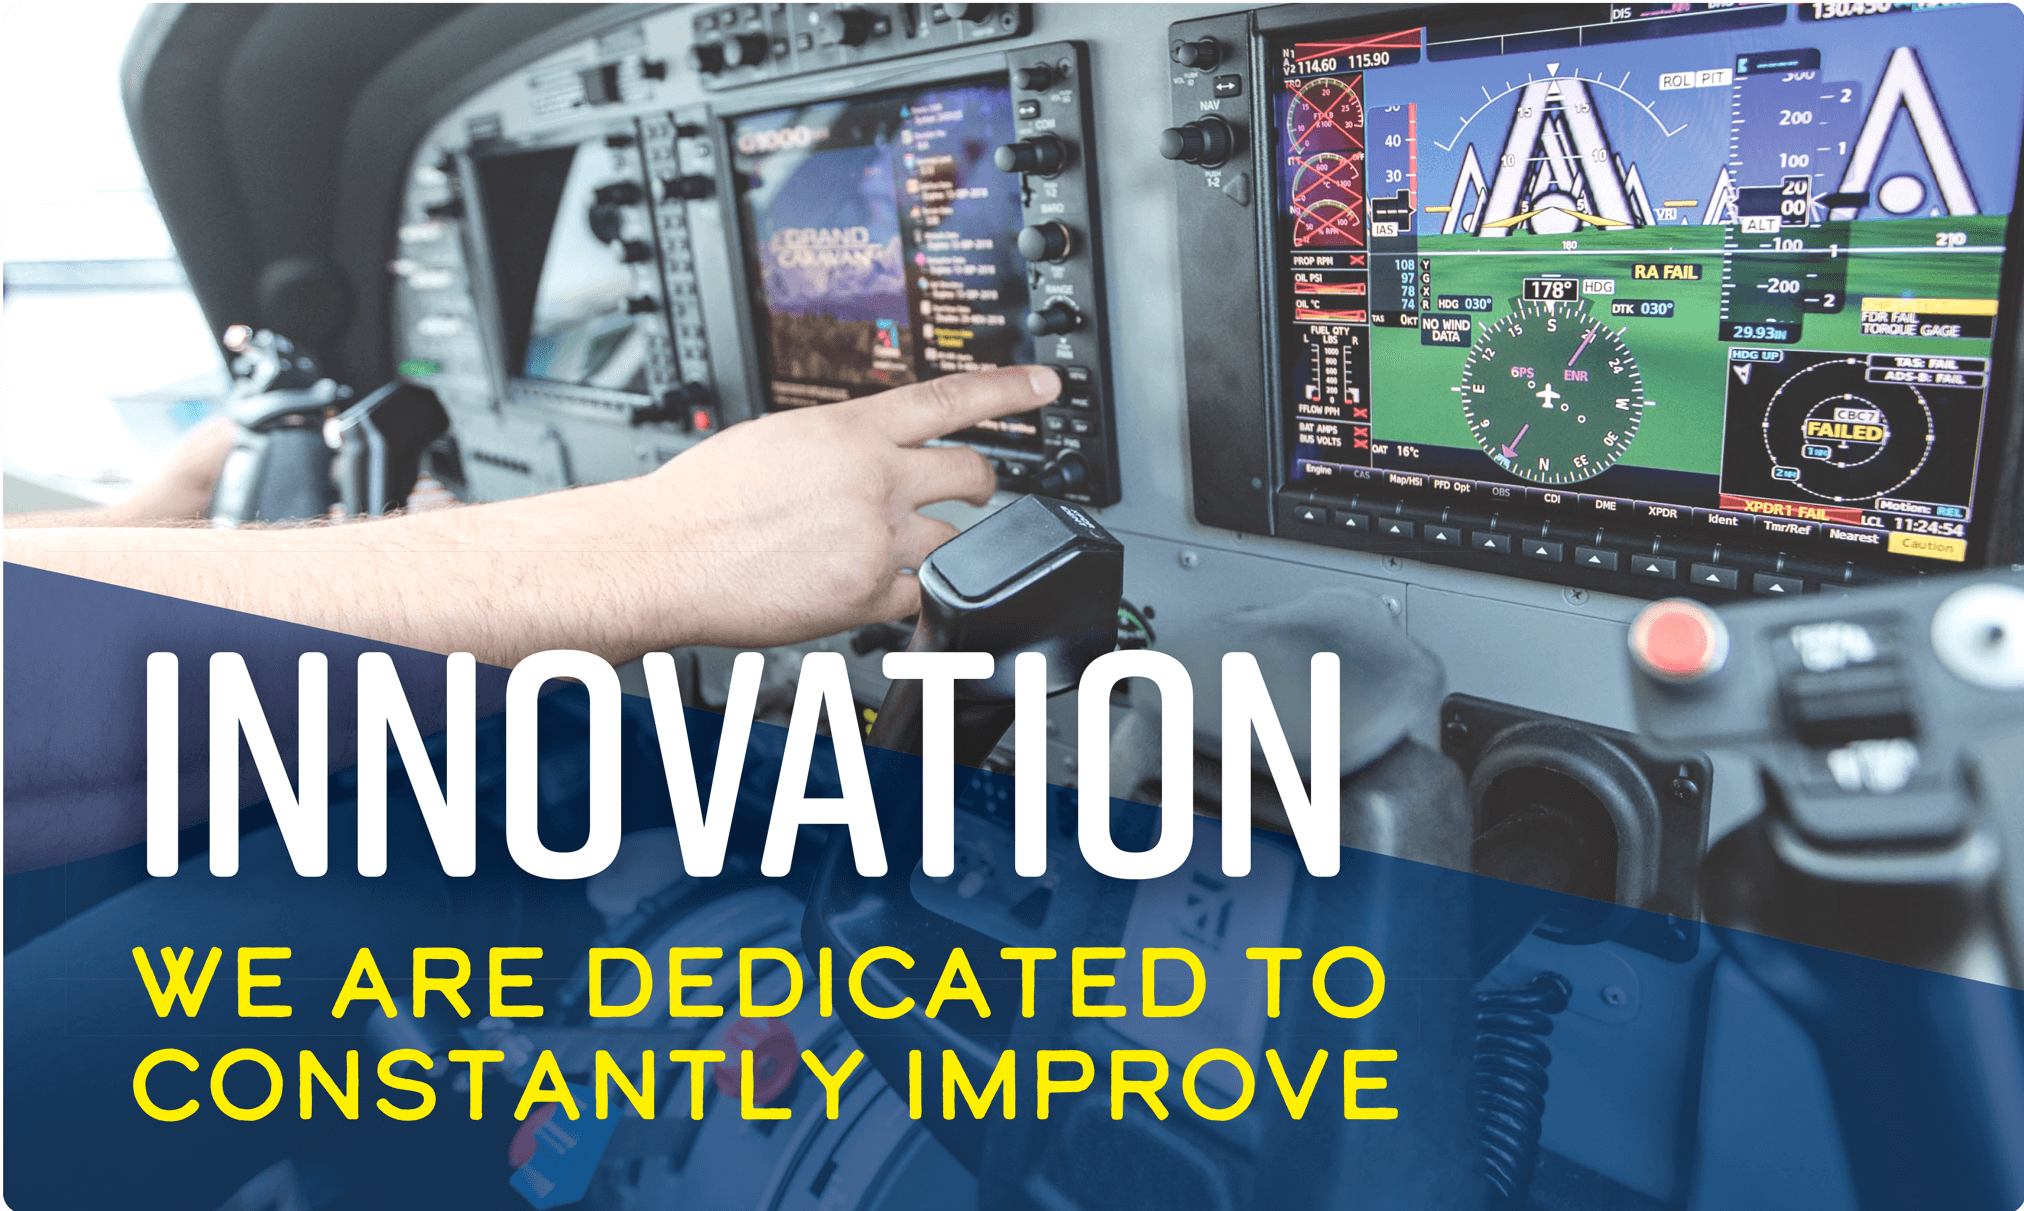 Innovation: We are dedicated to constantly improve